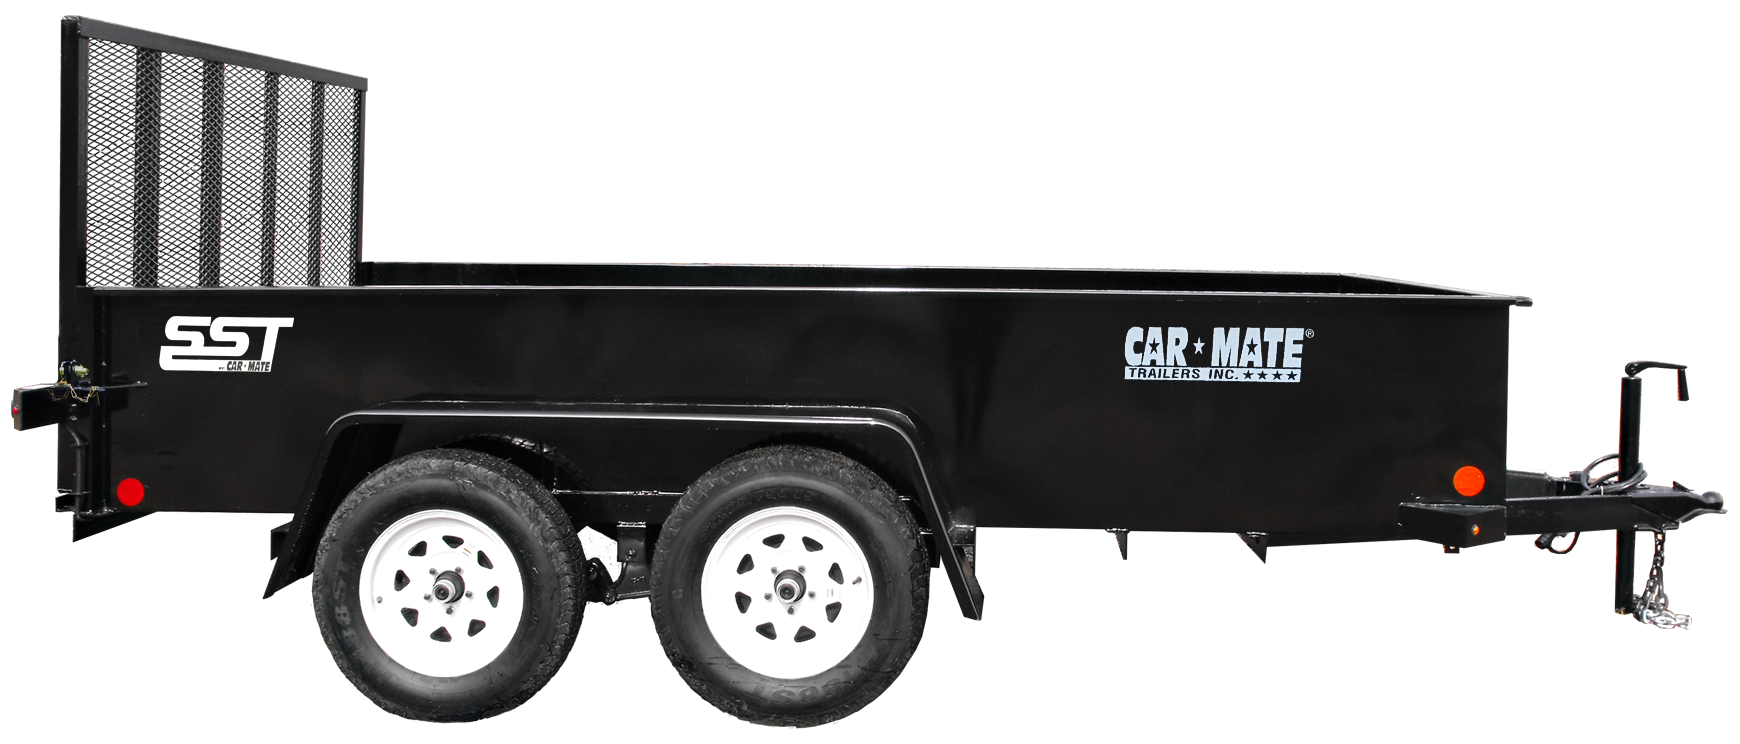 Utility Trailer SST Tandem Axle